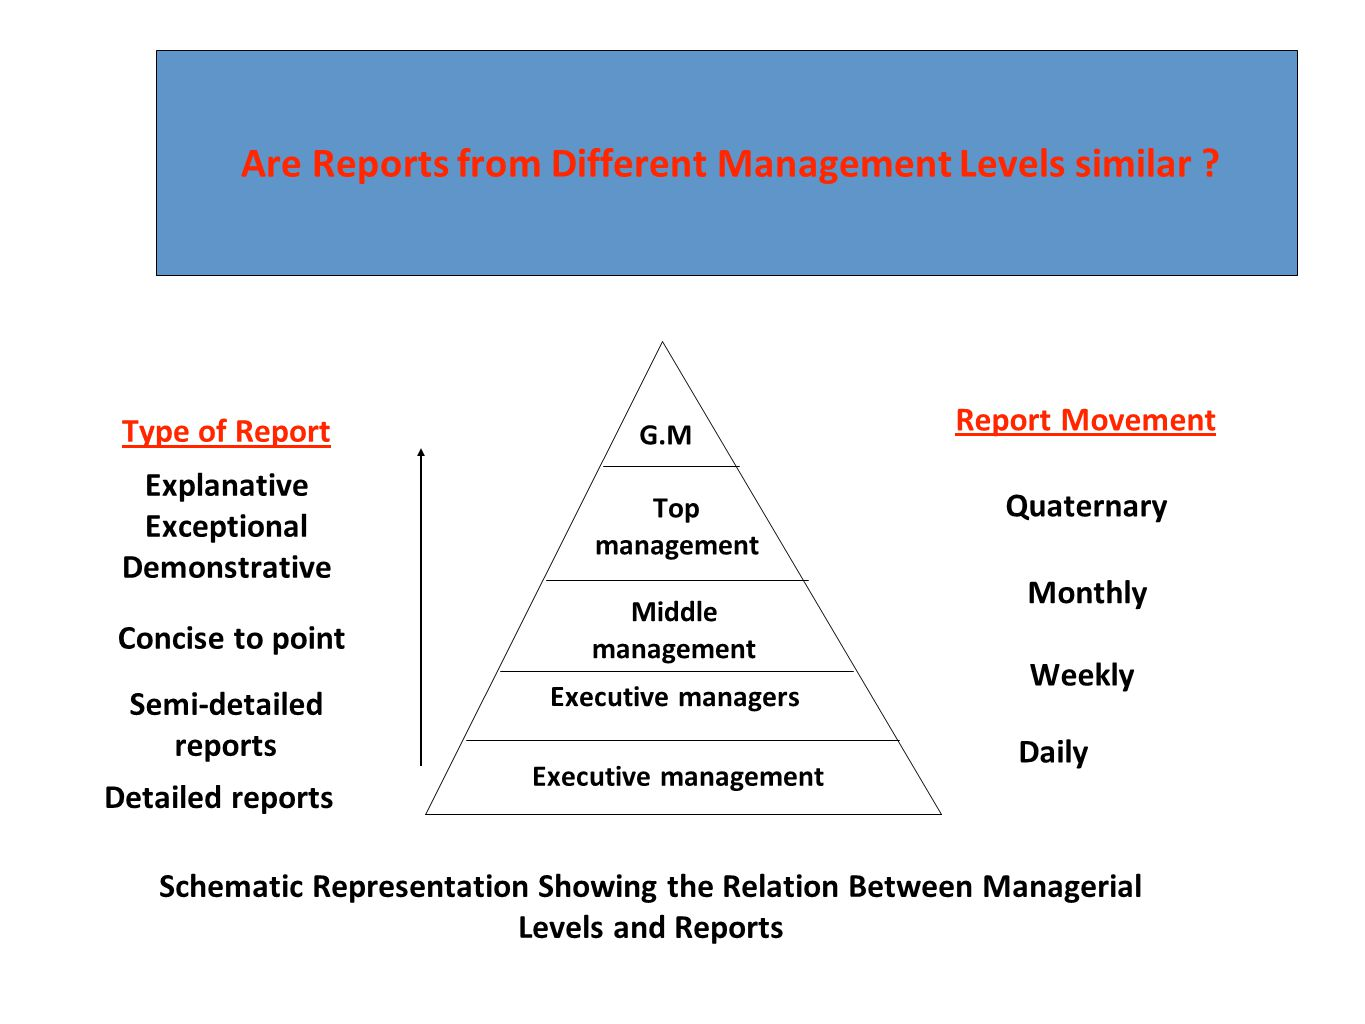 Are Reports from Different Management Levels similar